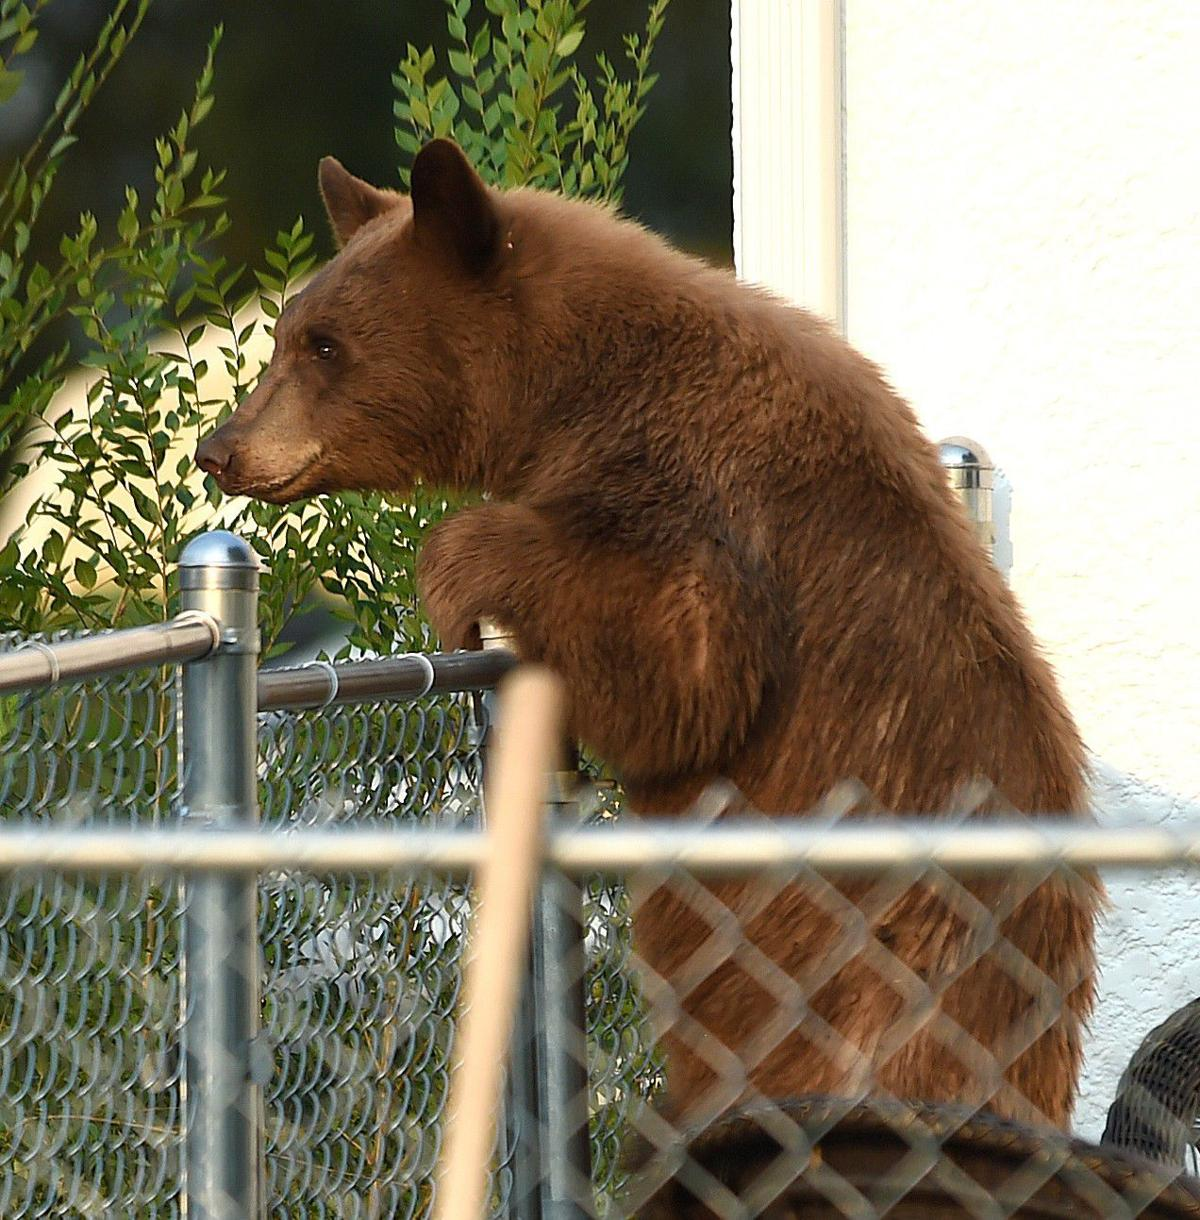 Bear in heights